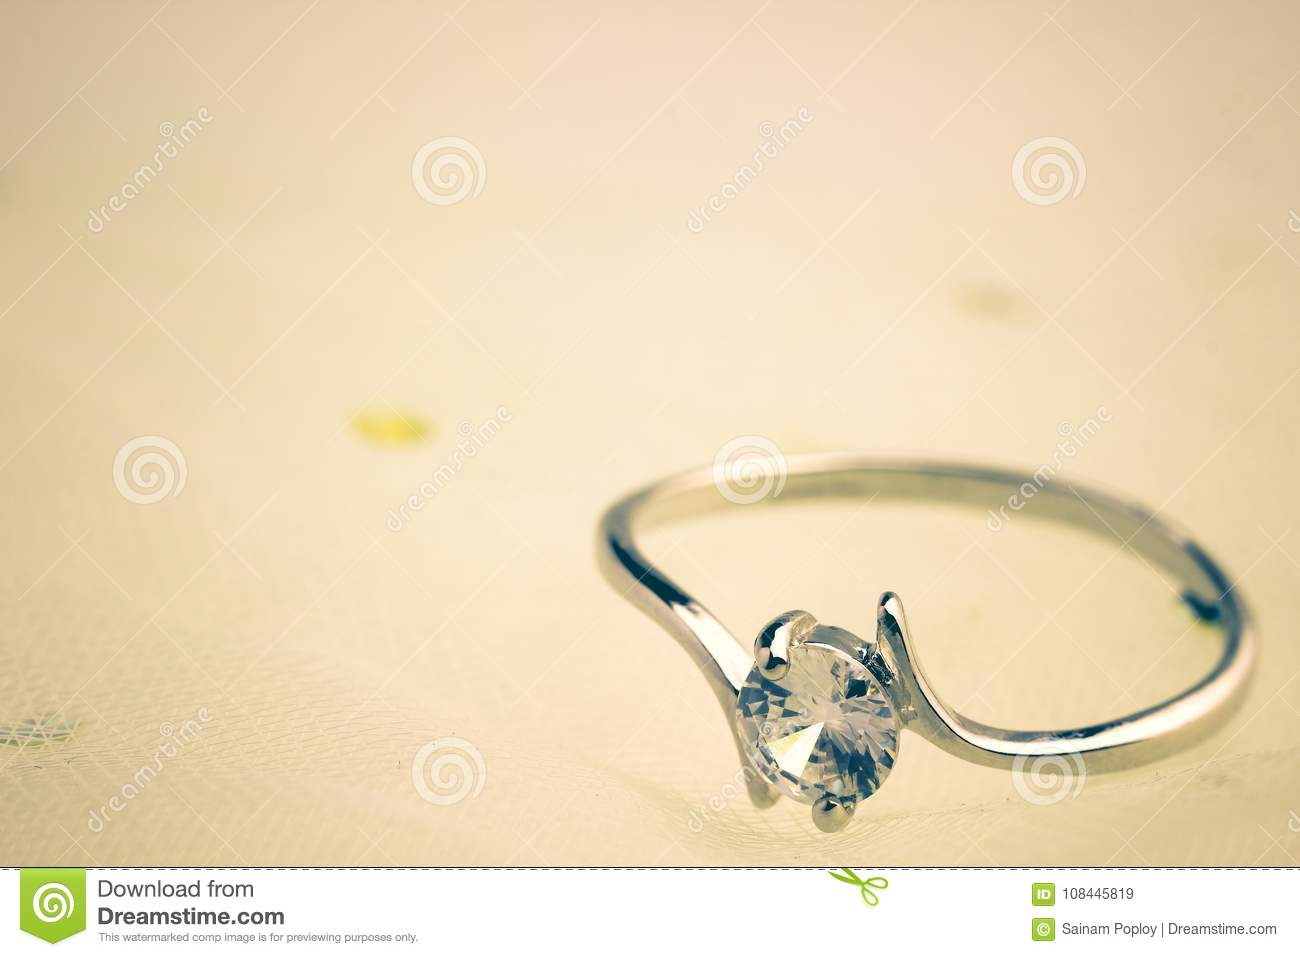 Fake Diamond Rings Are Placed On A White Wedding Dress Stock